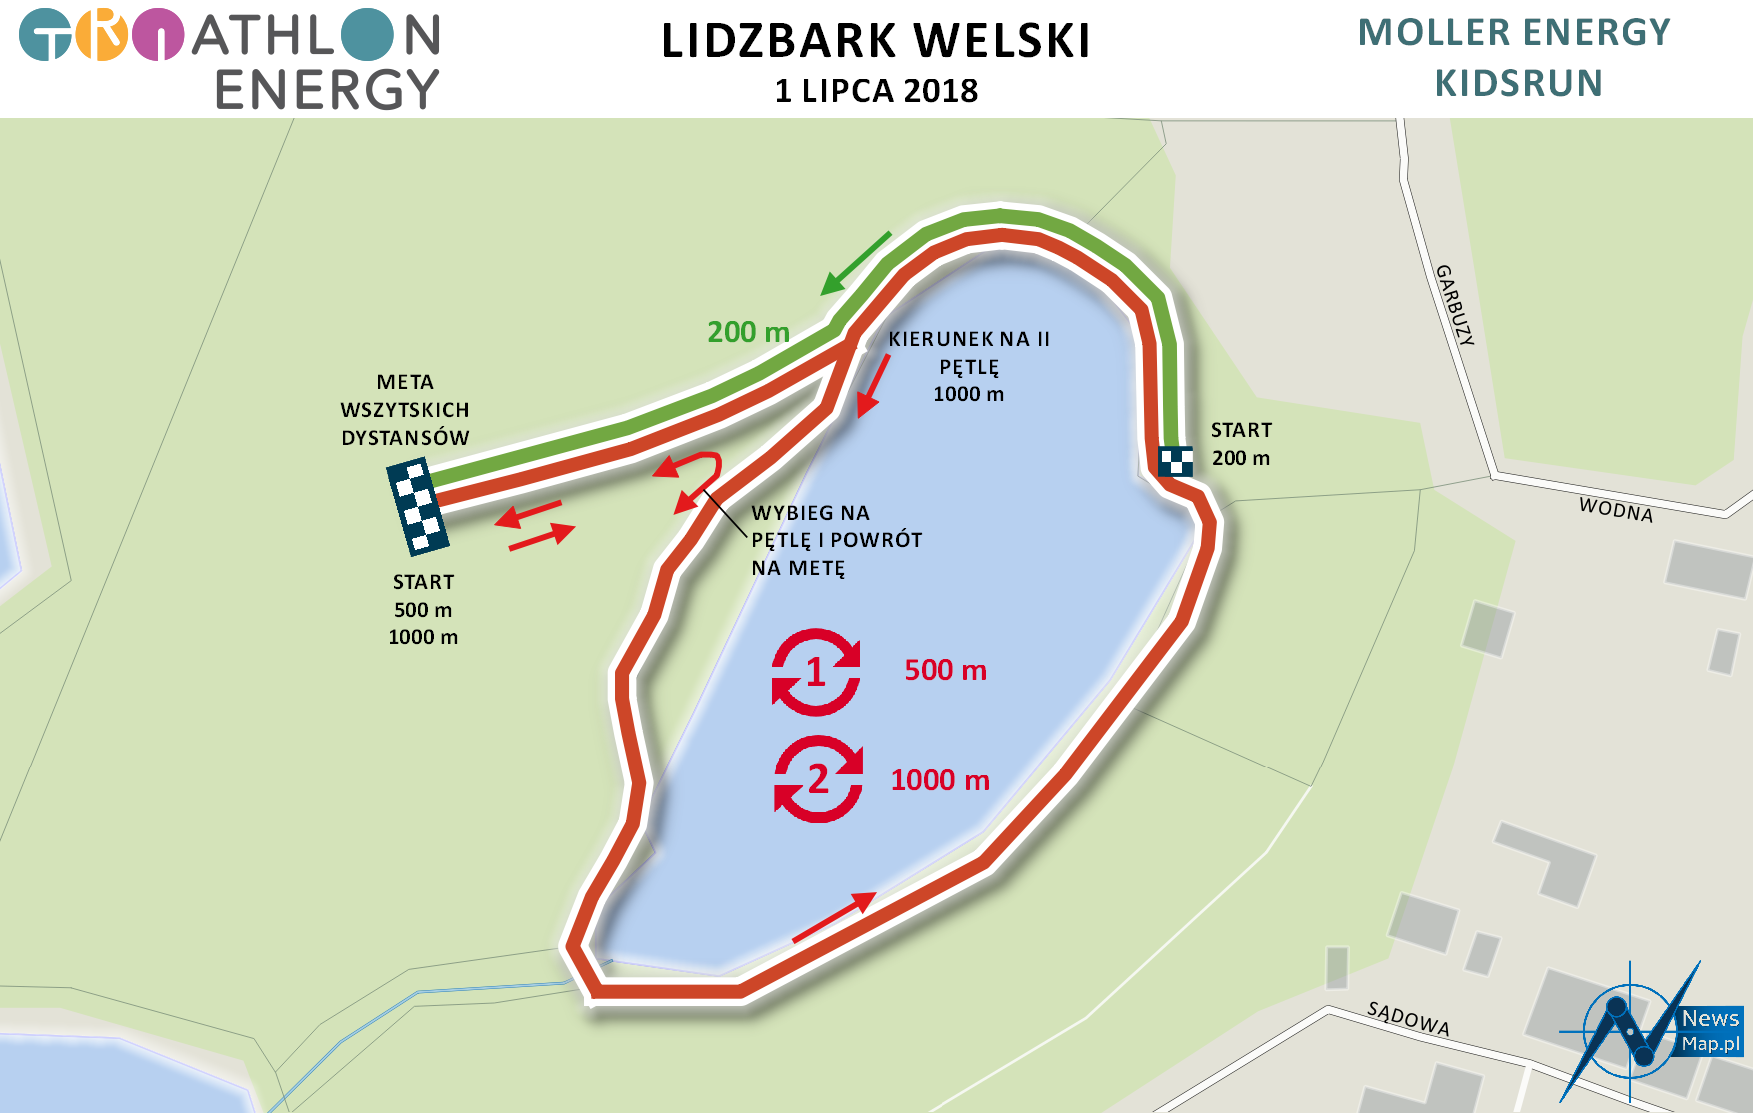 Lidzbark - KidsRun (on-line) 2018